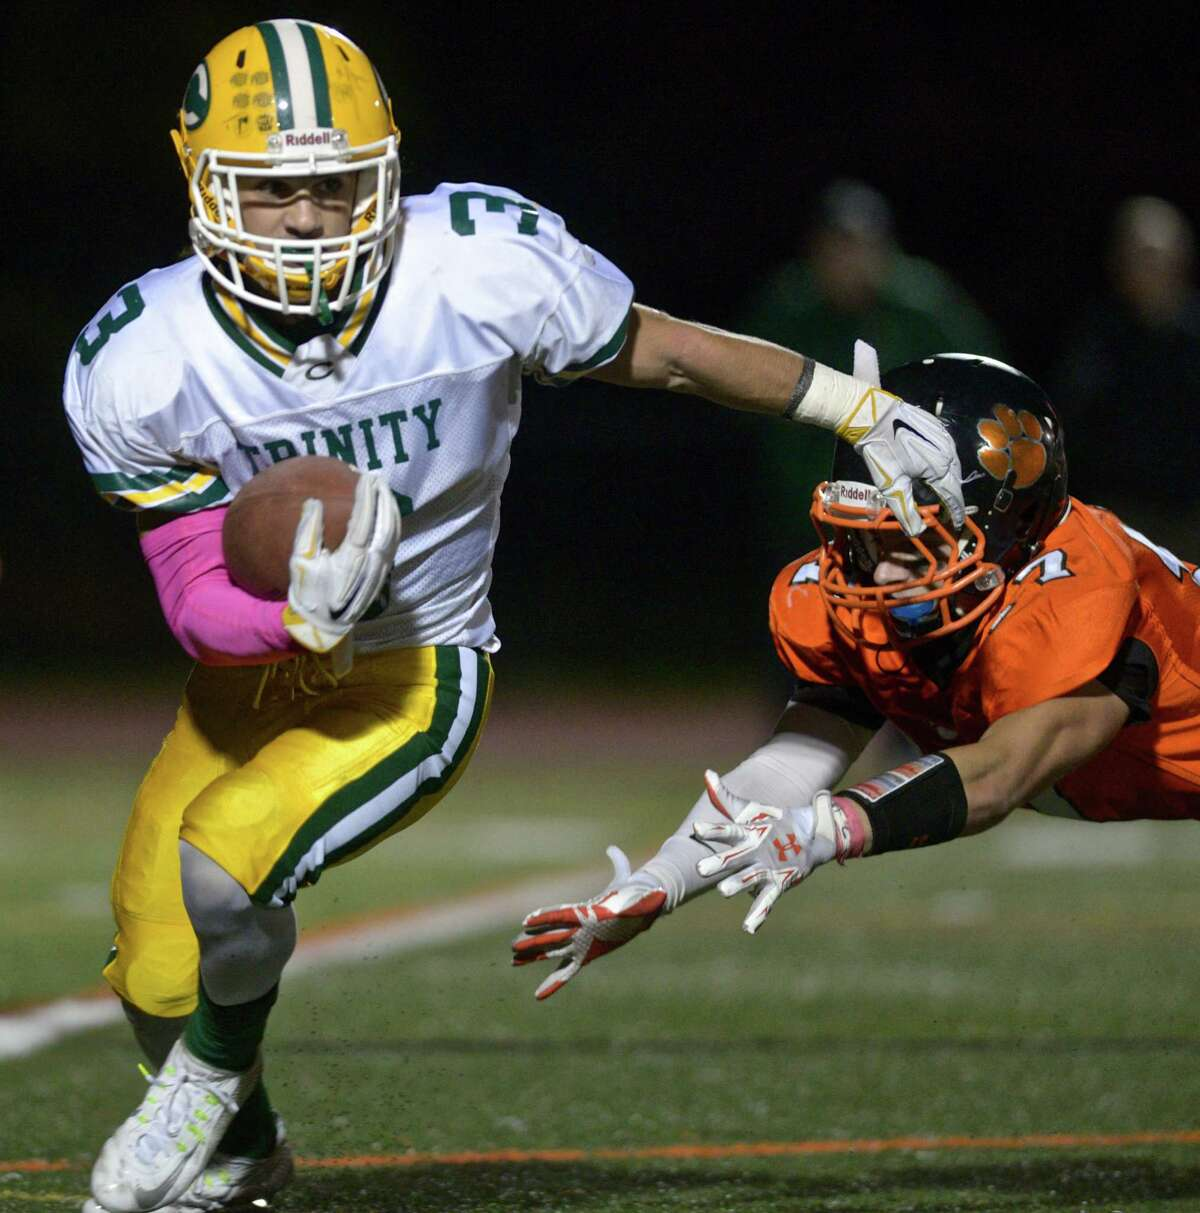 Trinity's Jonmichael Bivona (3) stays out of the reach of Ridgefield's William Carpenter (7) in the football game between Trinity Catholic and Ridgefield high schools, on Friday night, October 16, 2015, played at Ridgefield High School, Ridgefield, Conn.